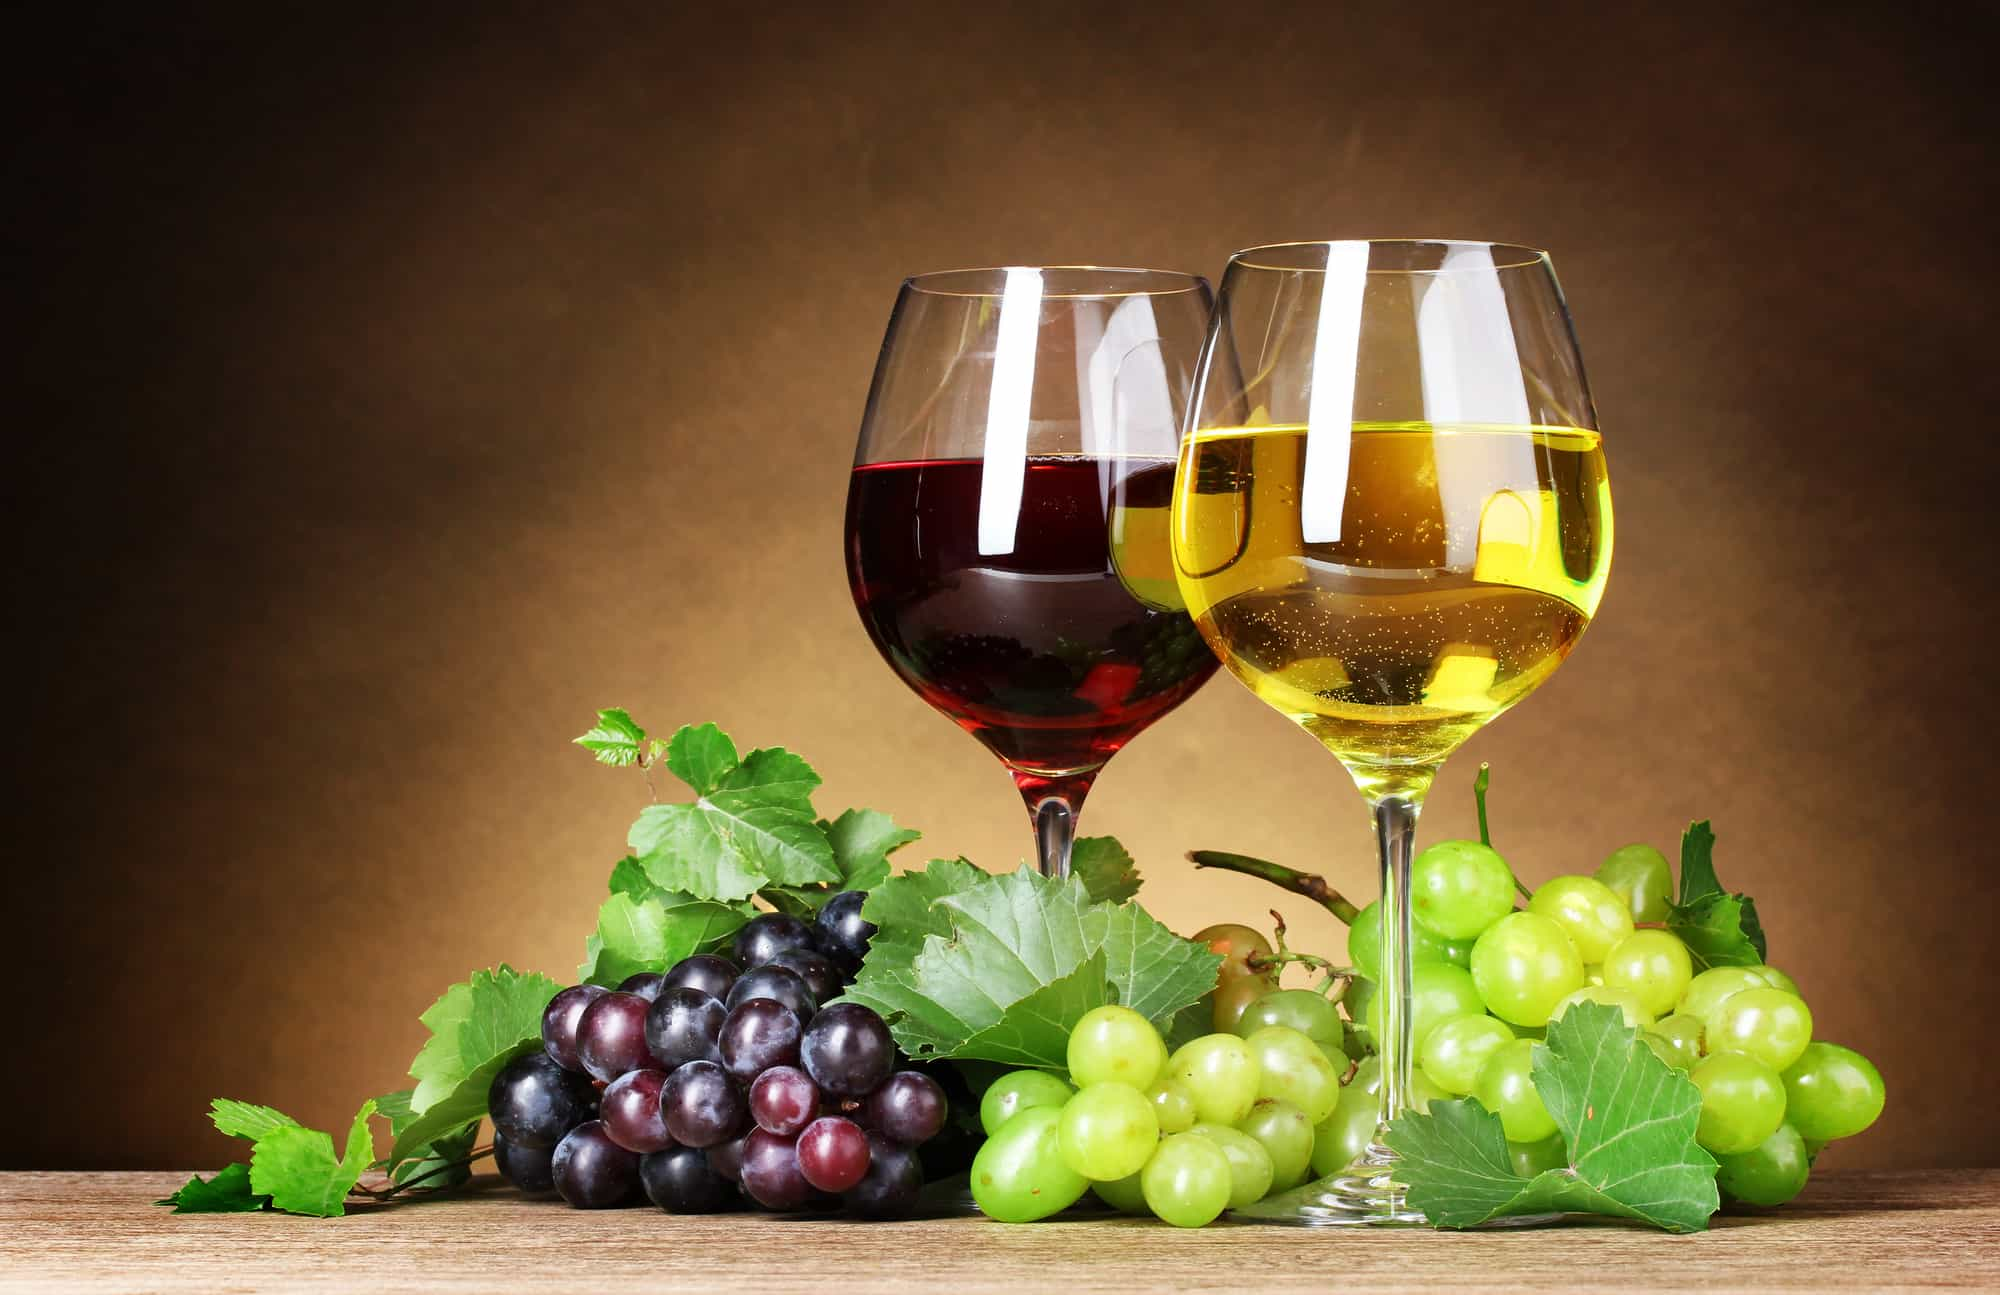 Glasses of wine and grapes on yellow background